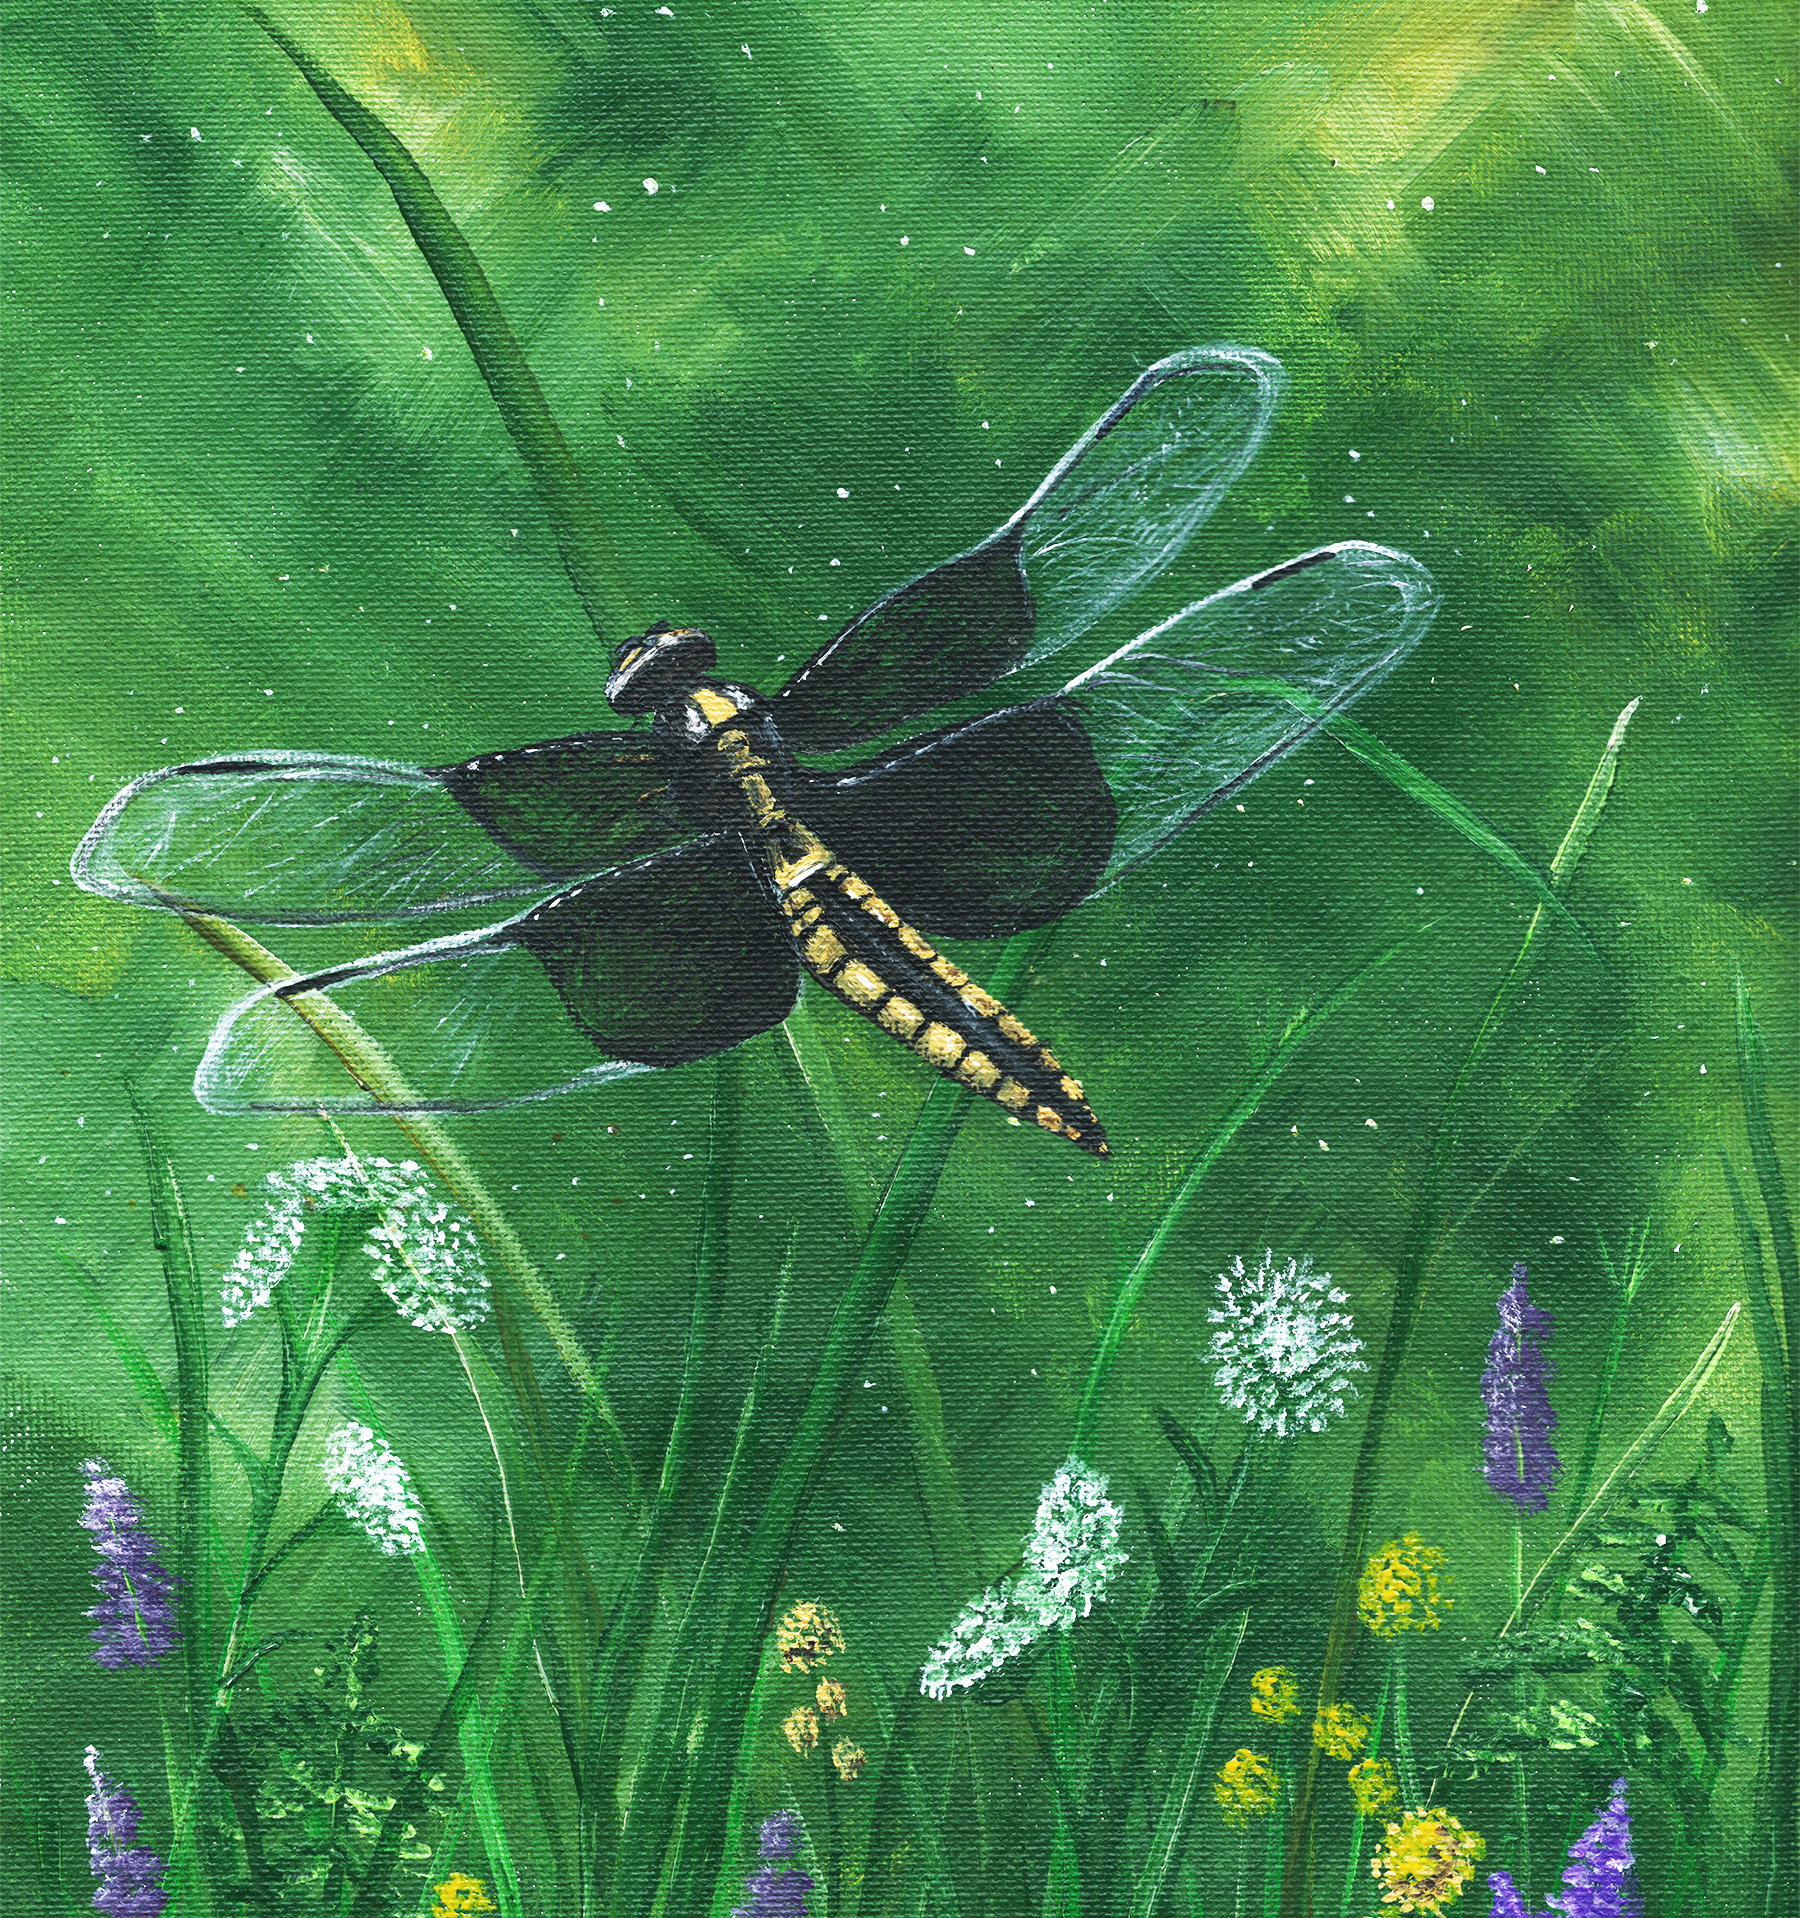 Dragonfly _ Bluewolfdesign